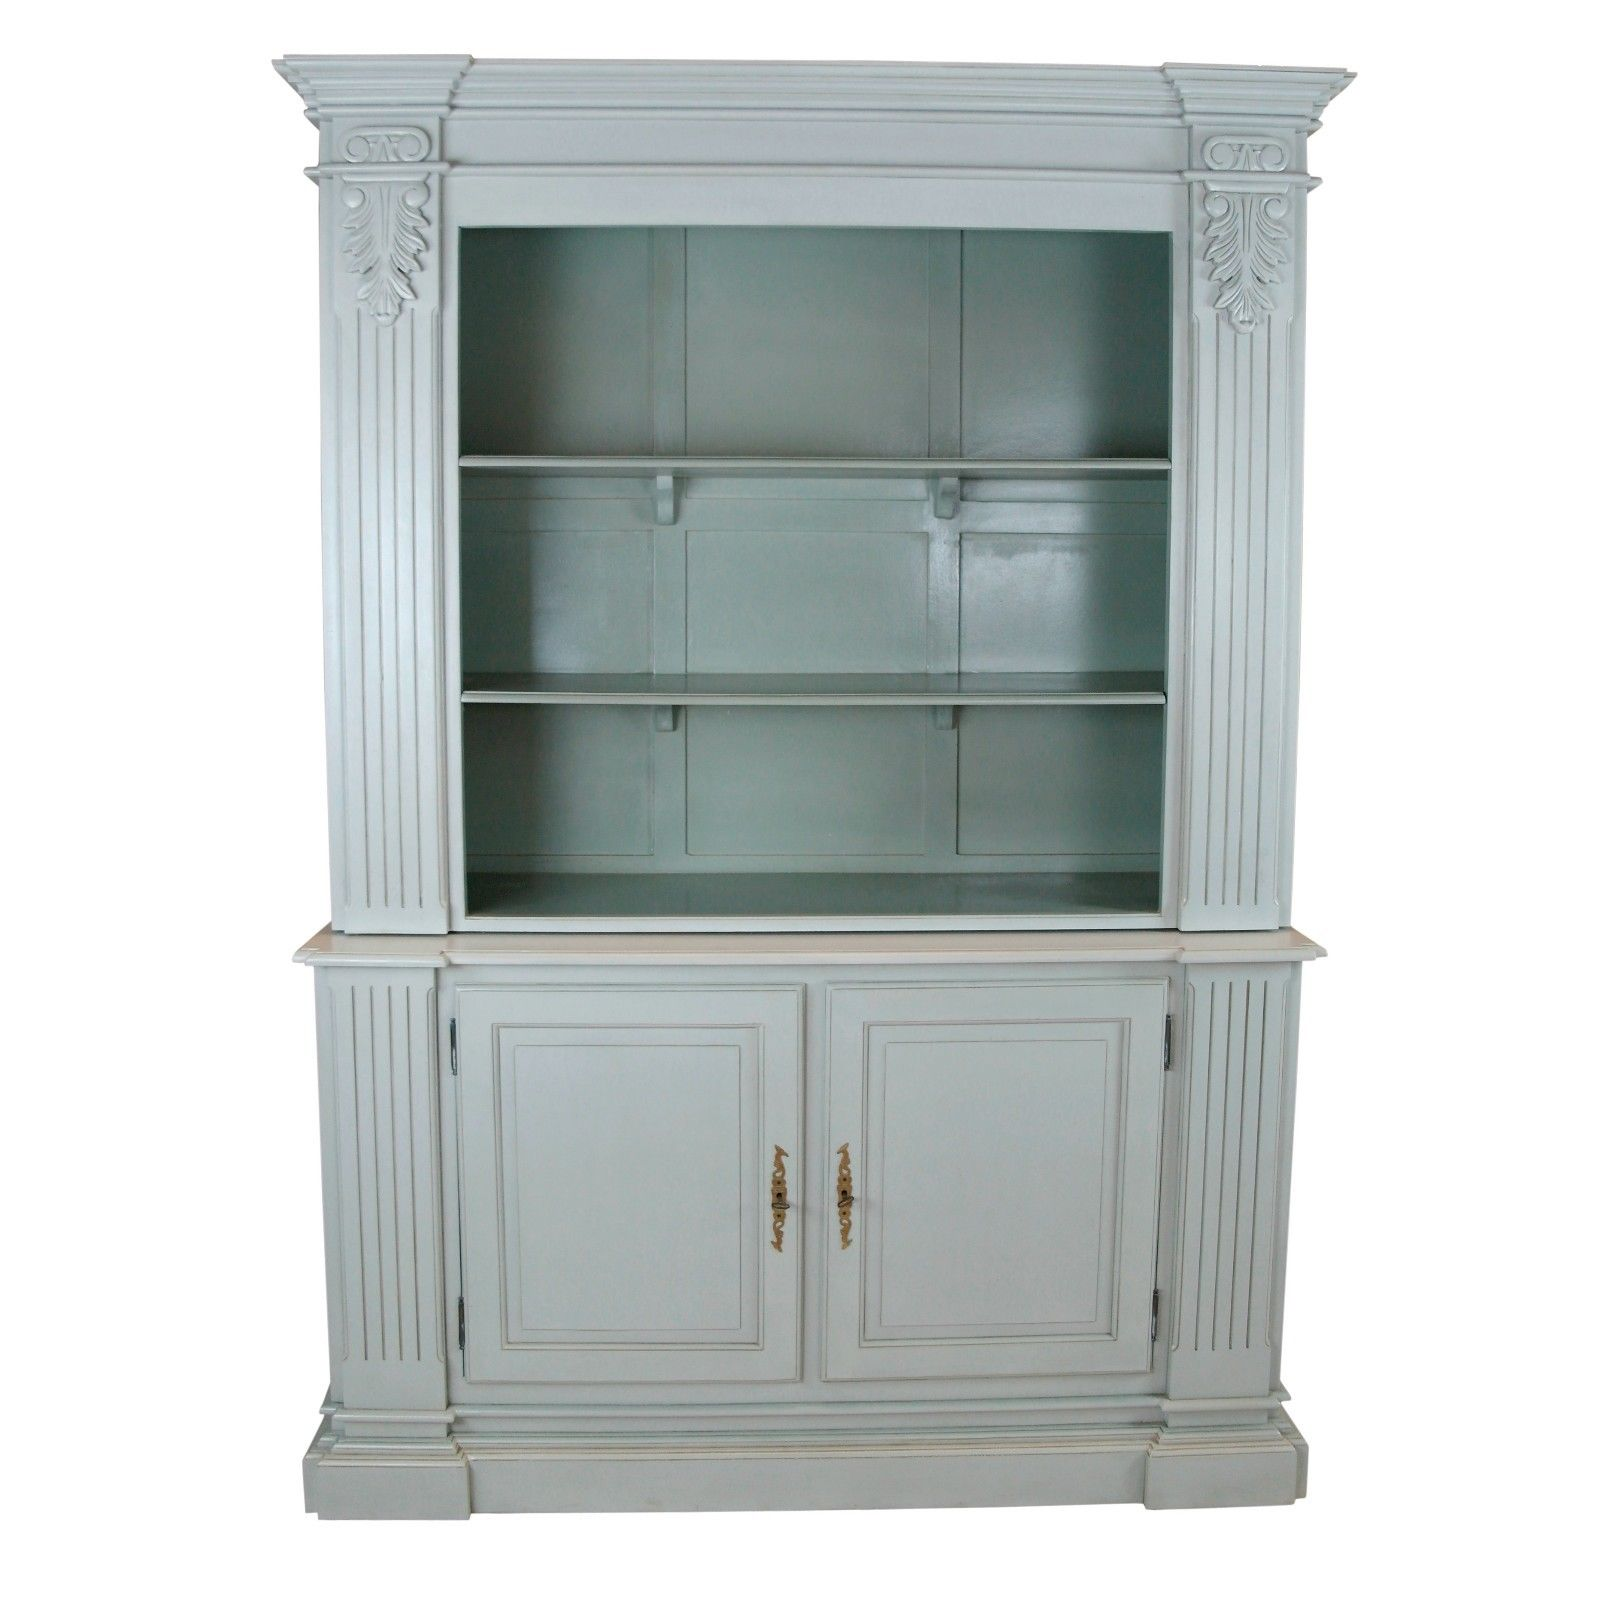 Large Grey Open Bookcase